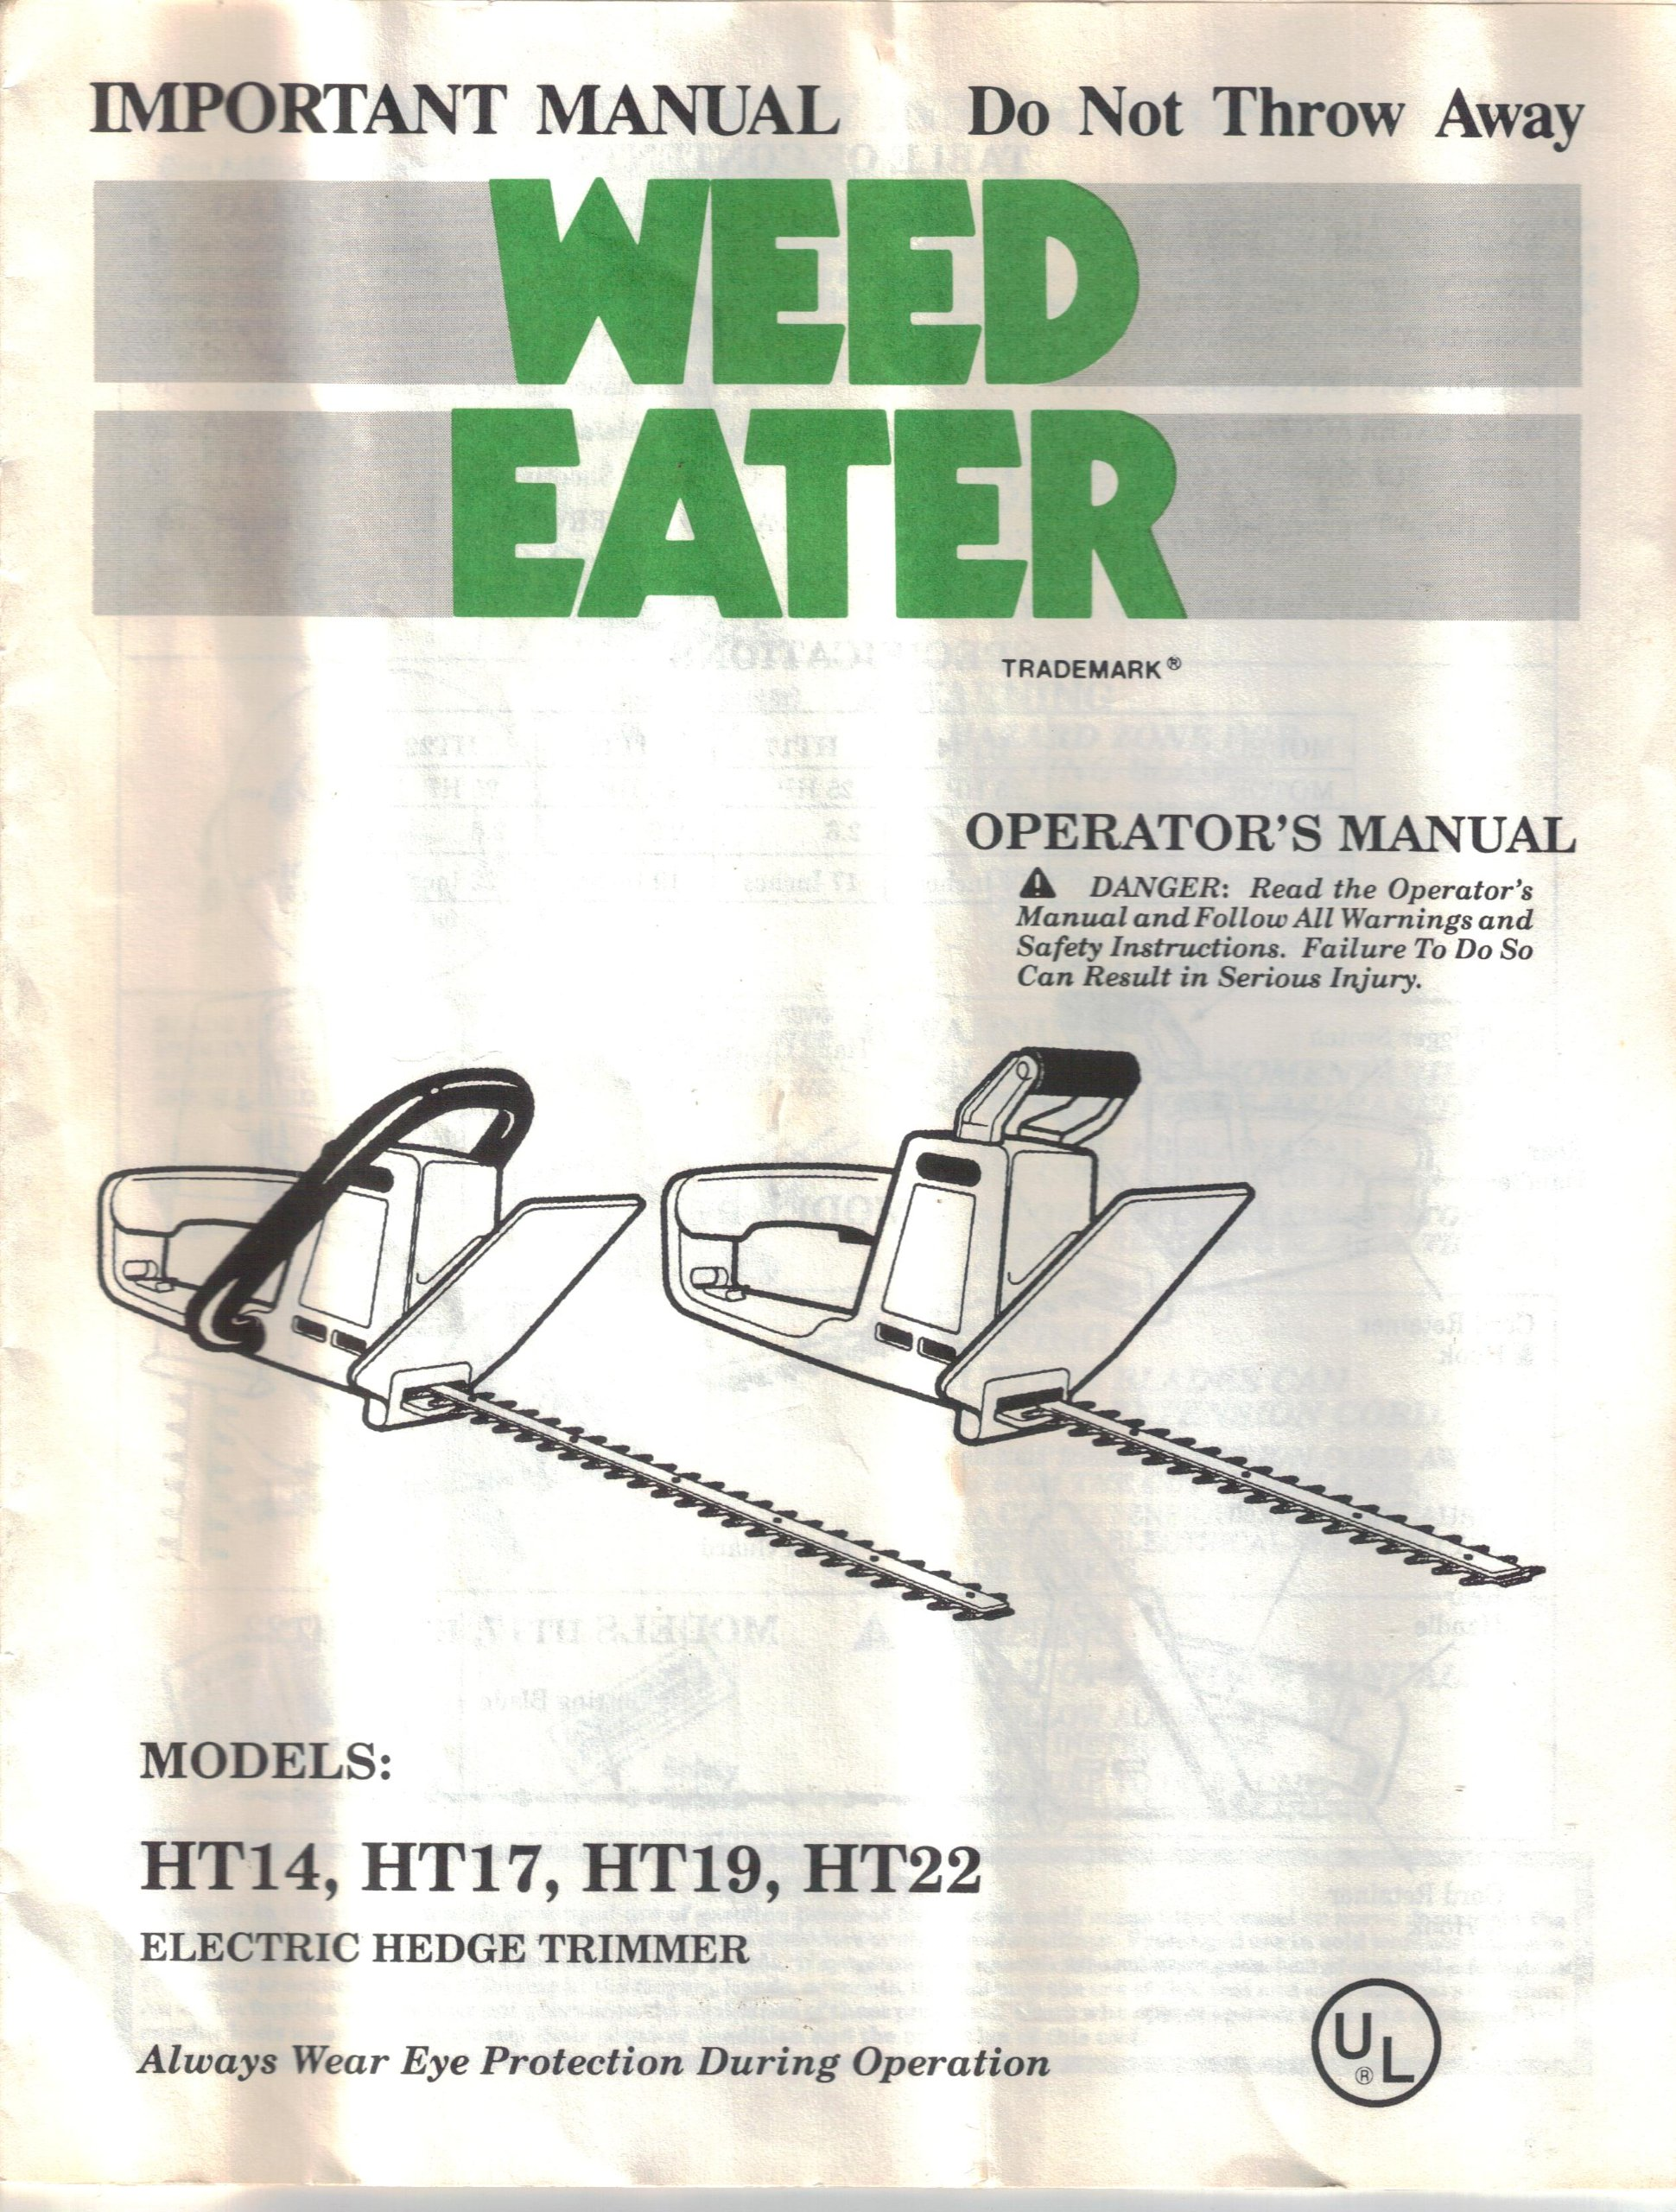 Poulan Weed Eater Electric Hedge Trimmer Operator's Owners Manual, Model  HT14 HT17 HT19 HT22: Poulan: Amazon.com: Books